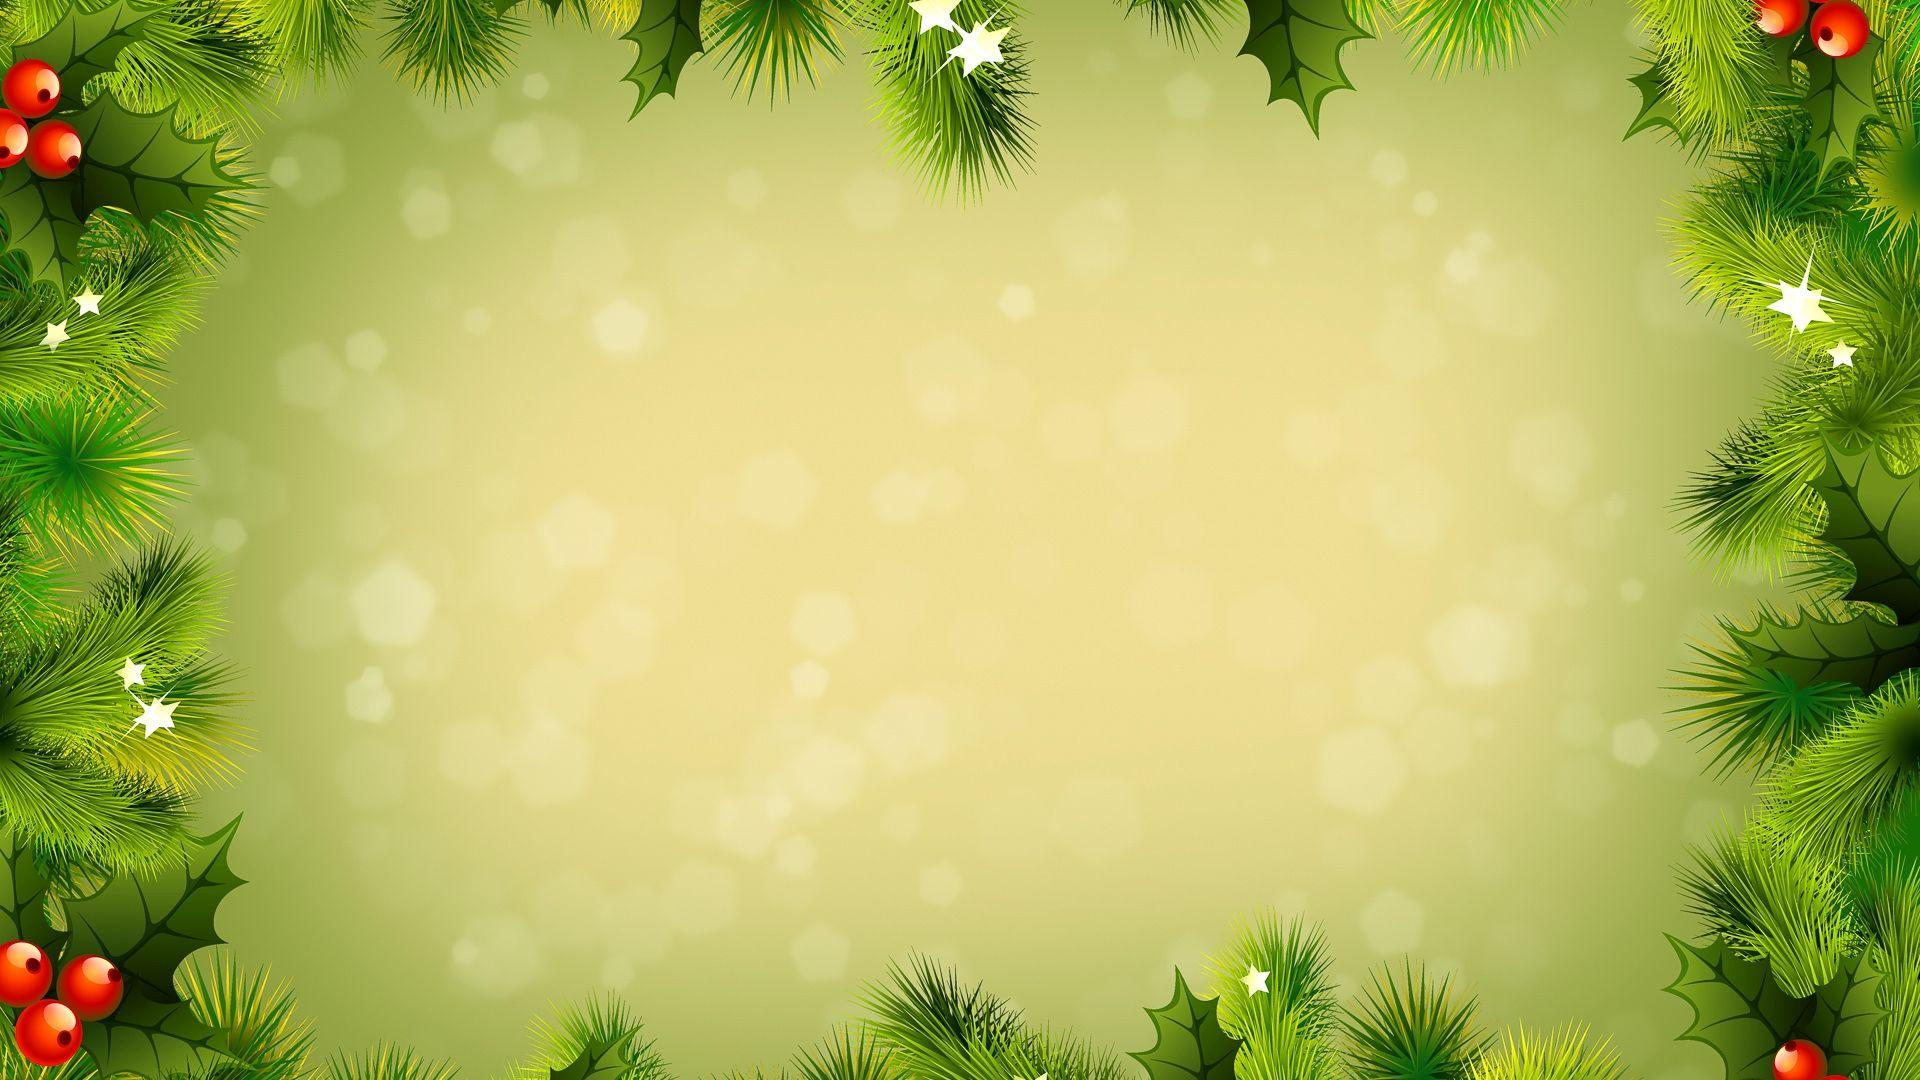 Download Wallpapers 1920x1080 background, new year, branches Full HD